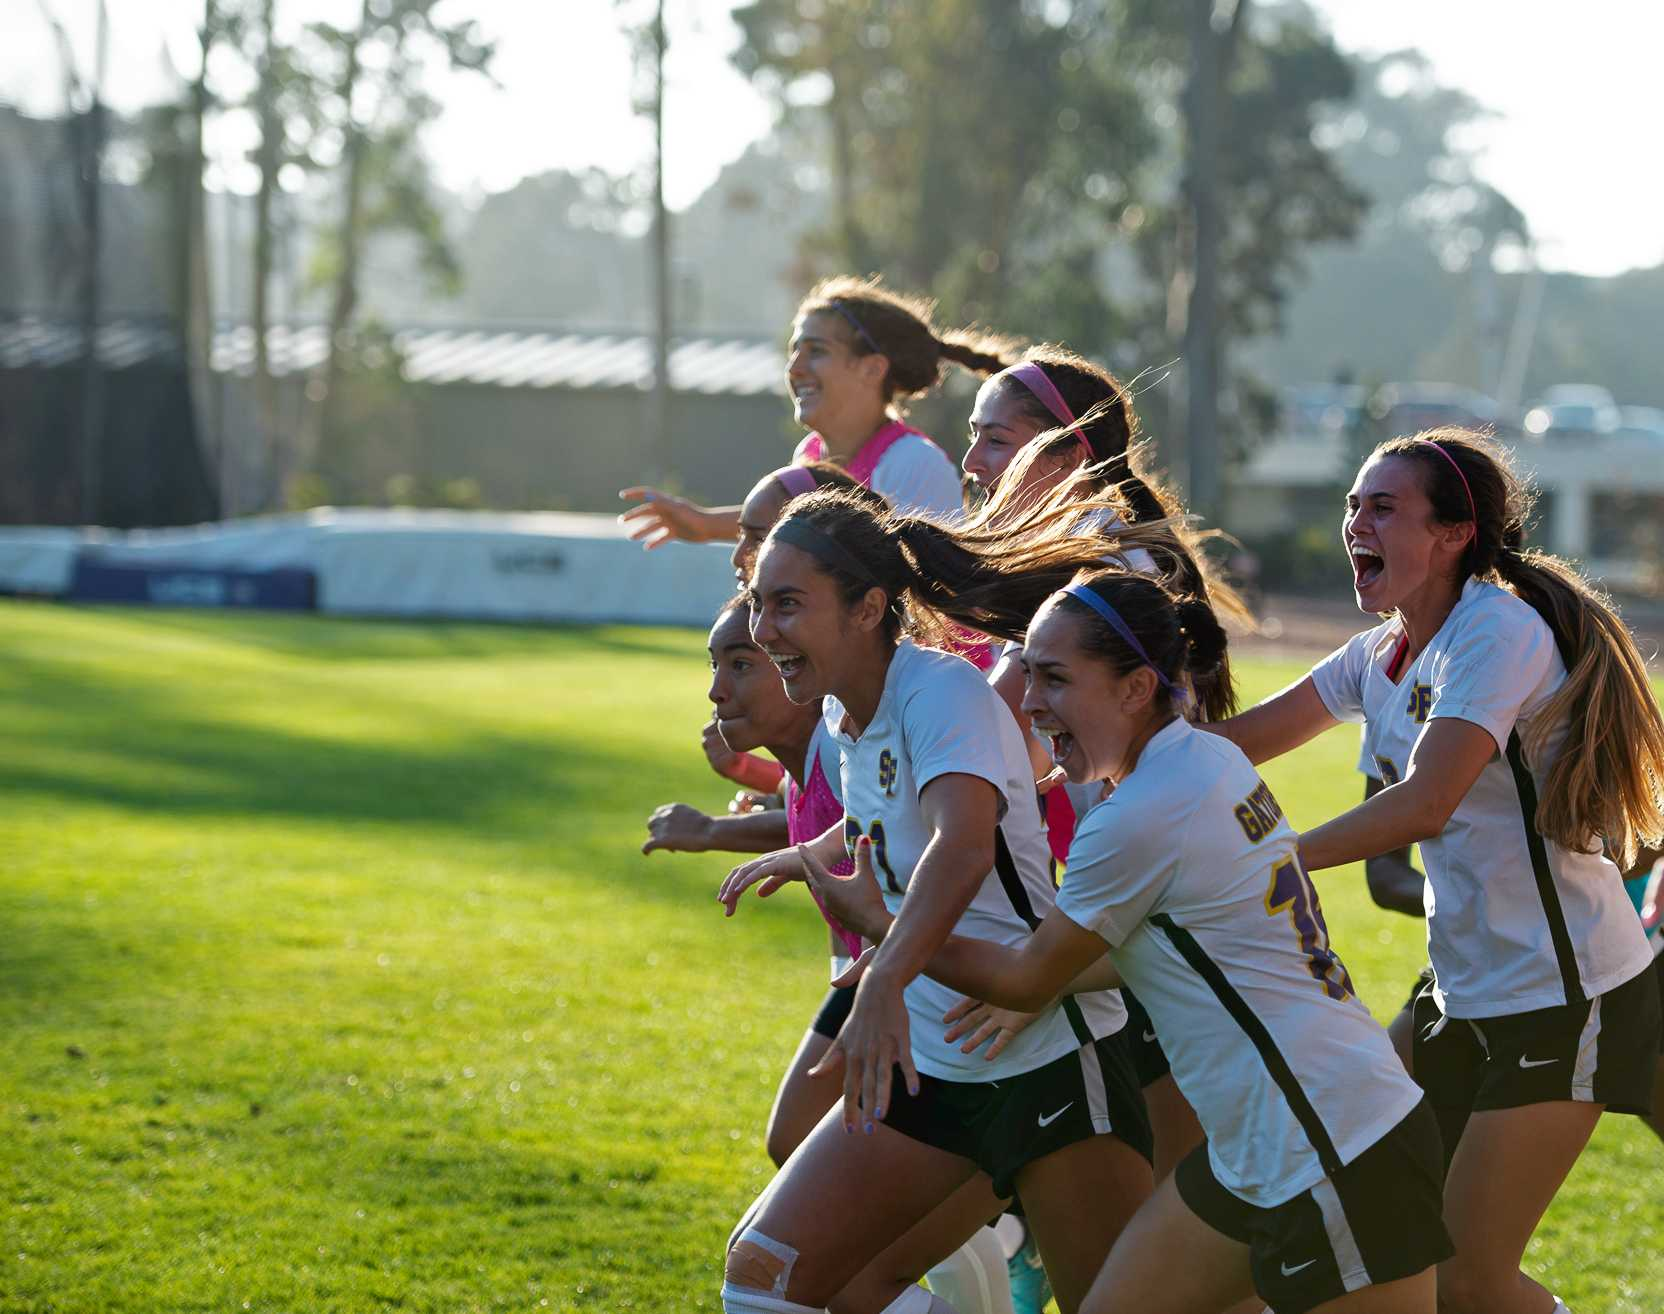 The SF State women's soccer team celebrates, as the team secure the 1-0 victory against the Stanislaus State Warriors on Friday, Oct. 19. (David Rodriguez/Golden Gate Xpress)